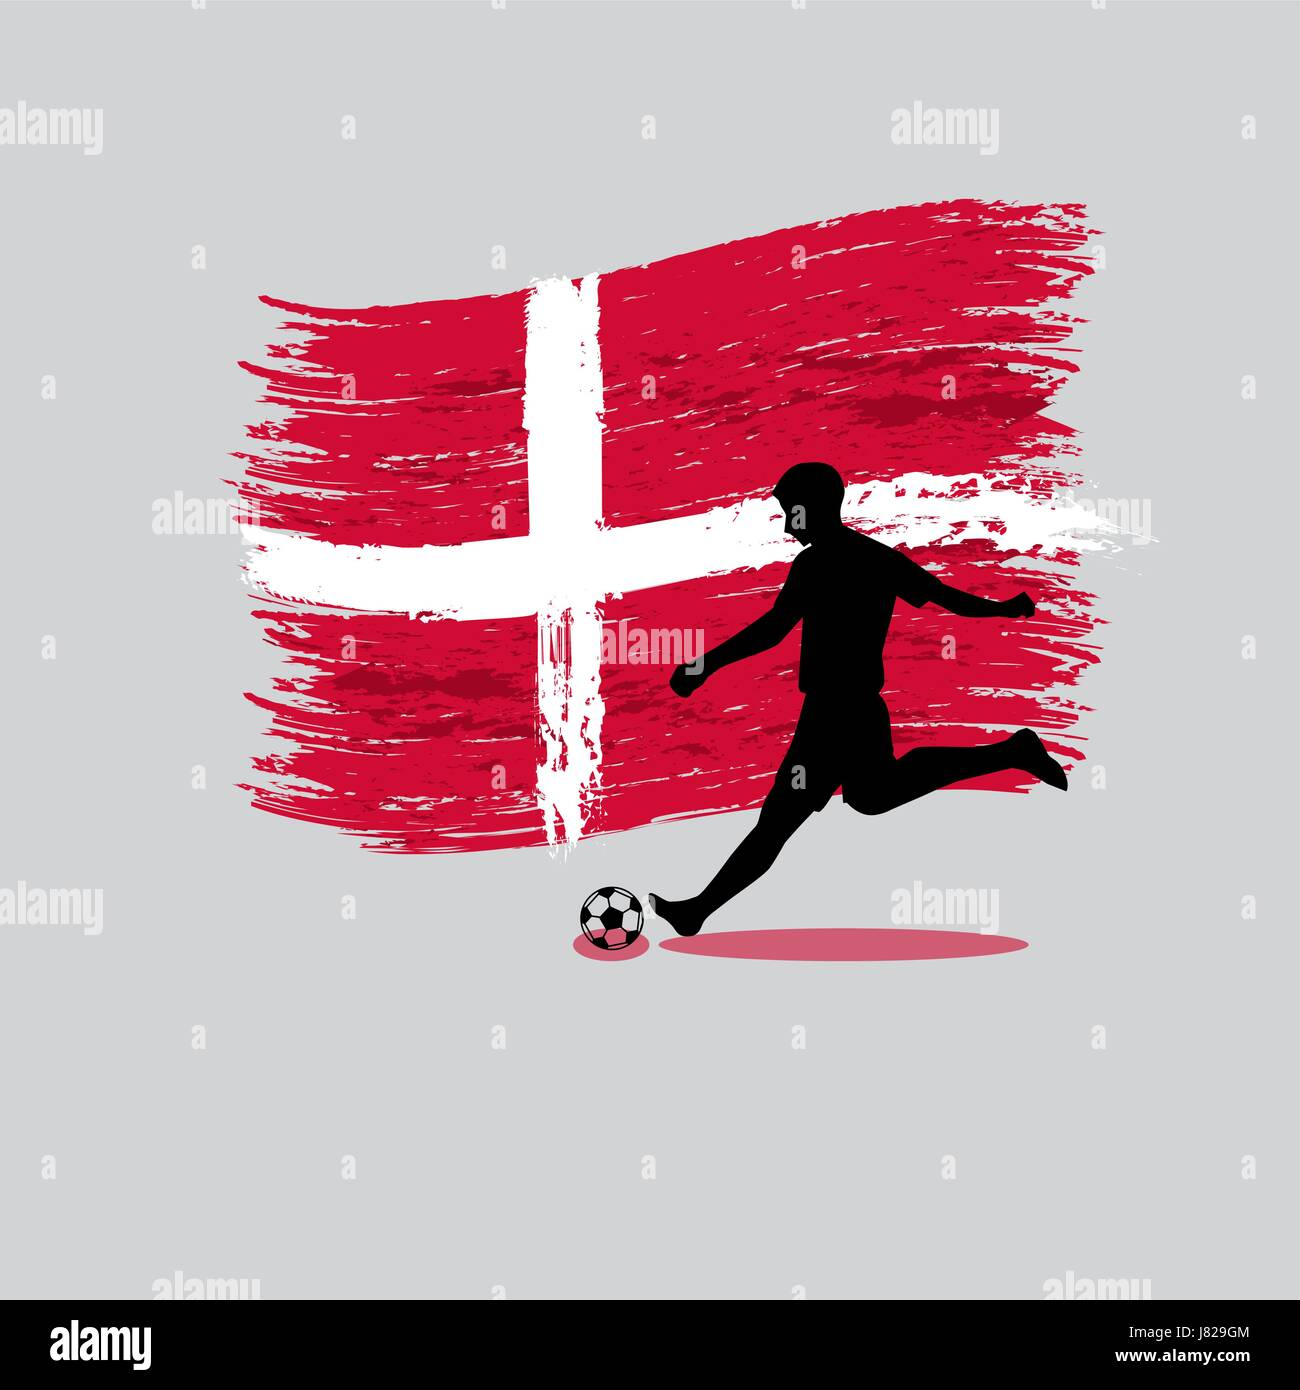 Soccer Player action with Kingdom of Denmark flag on background vector - Stock Image